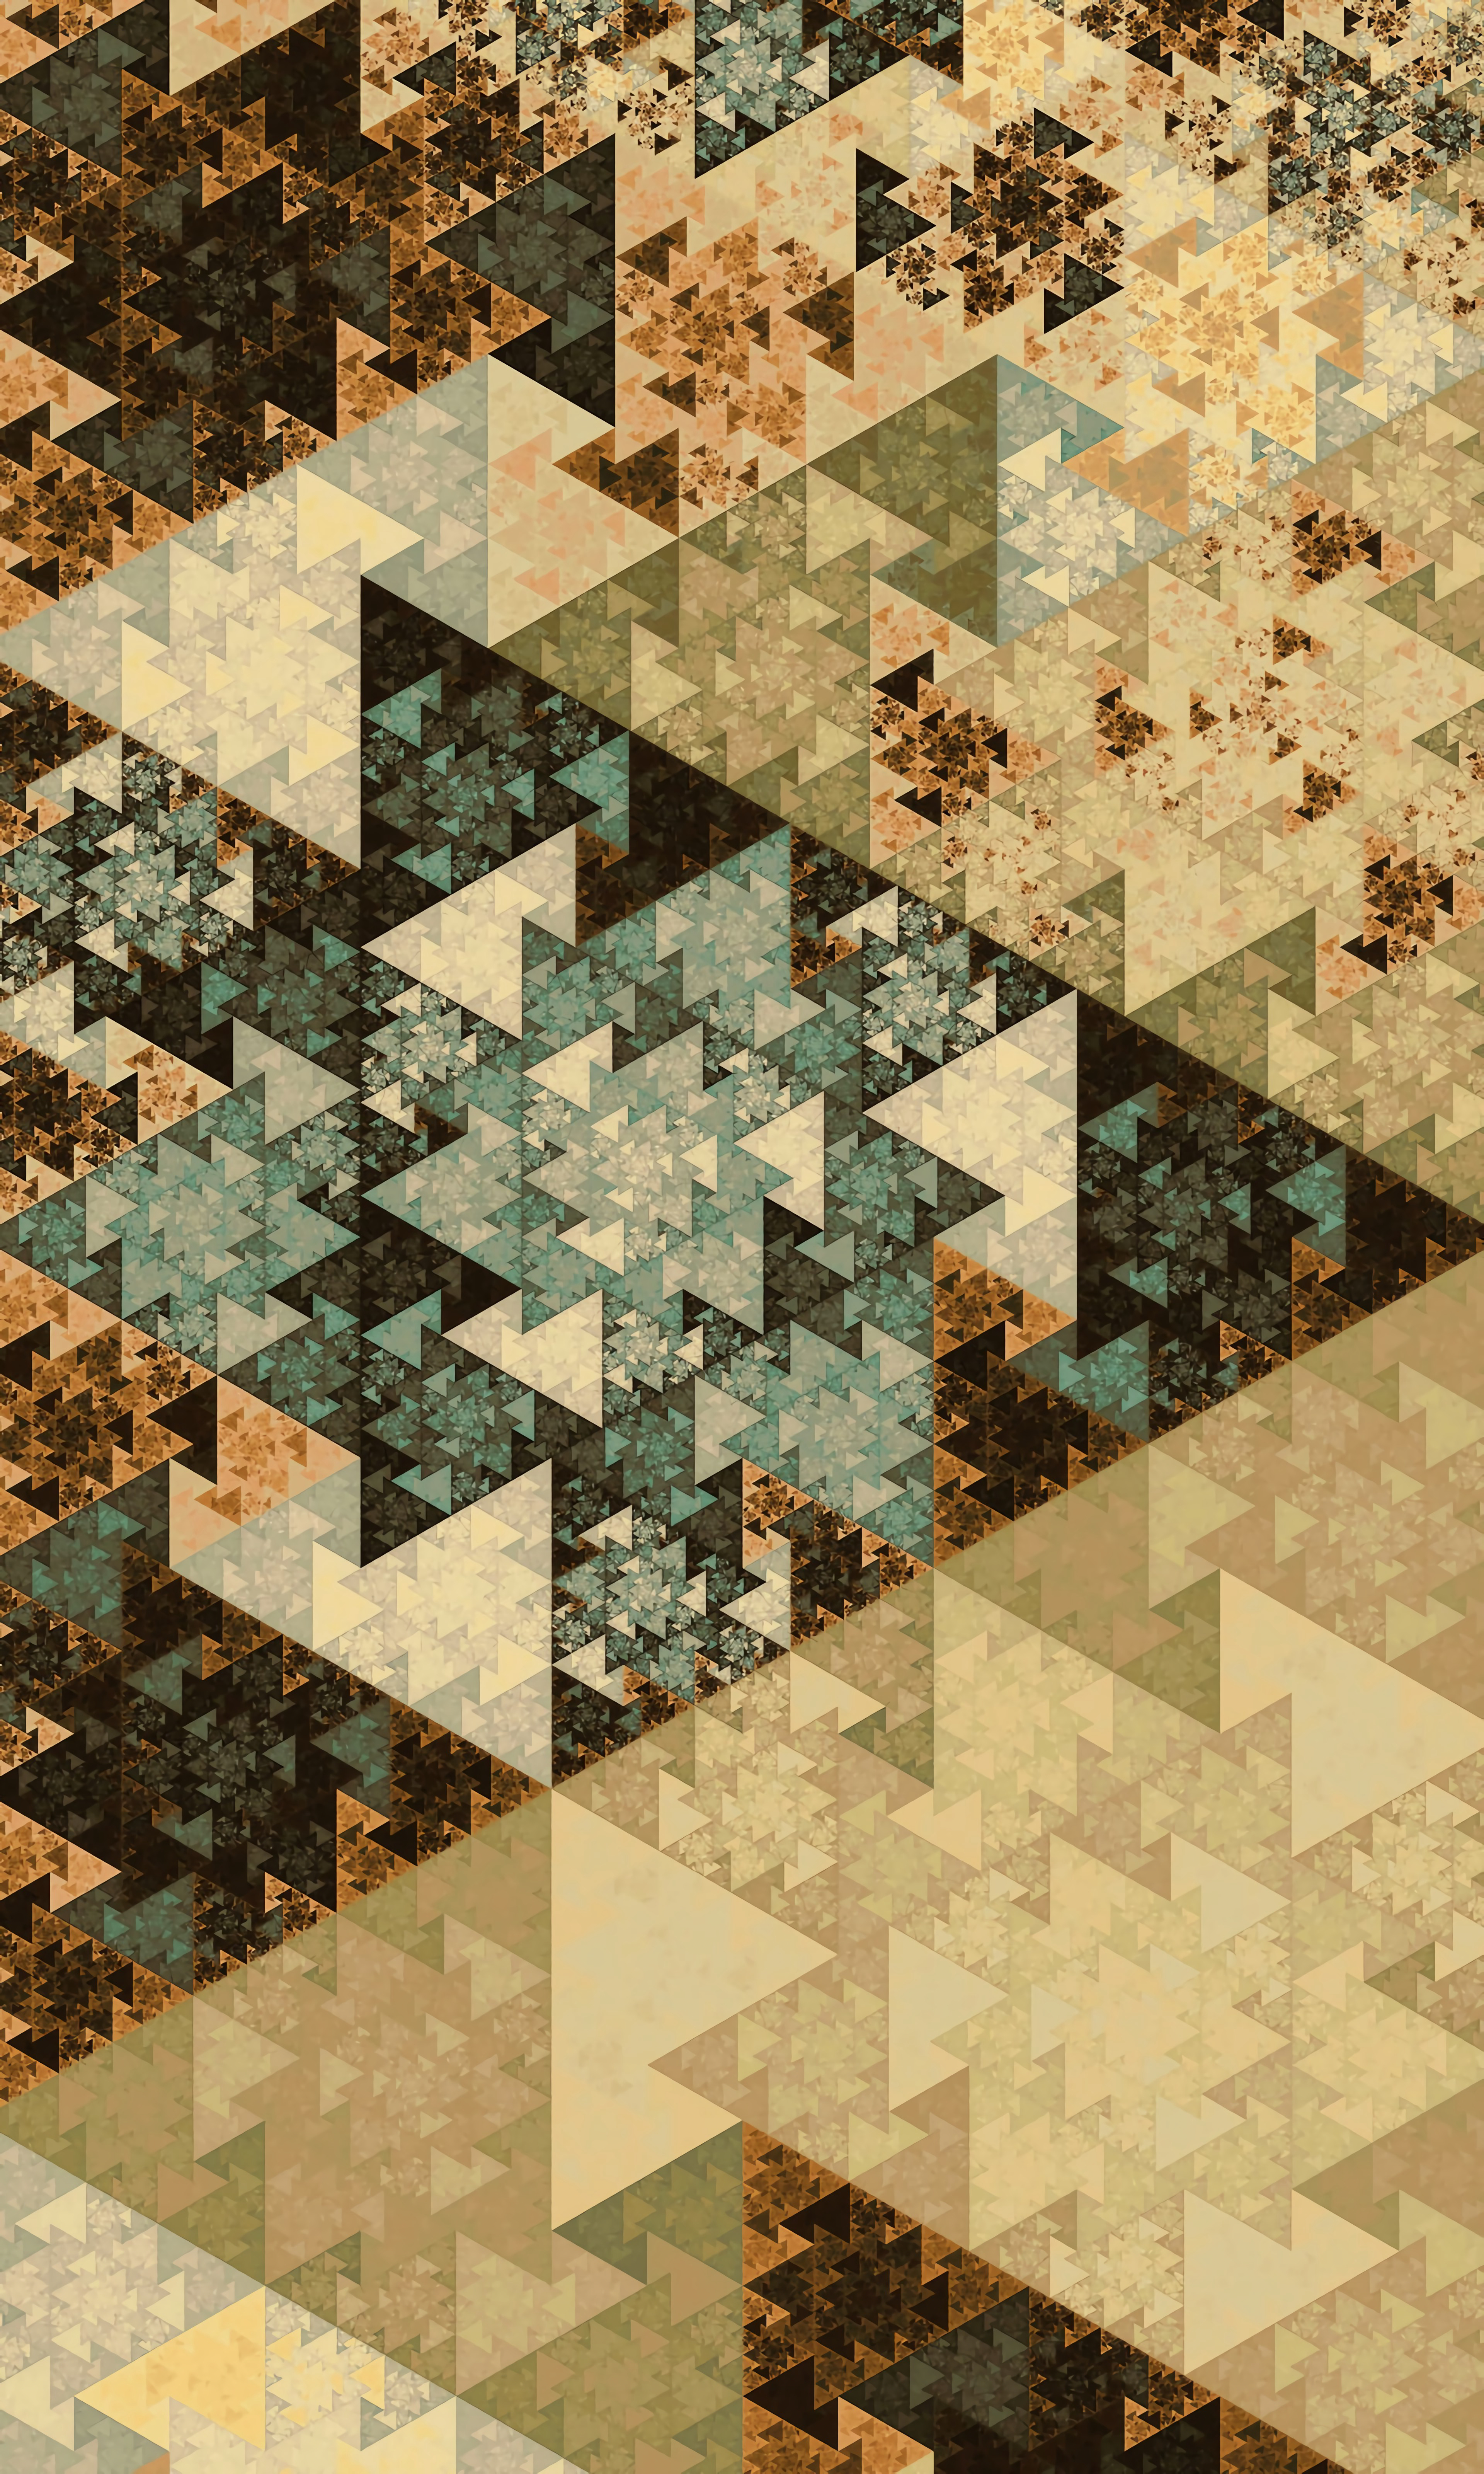 137805 download wallpaper Textures, Texture, Pattern, Triangles, Geometry, Multicolored, Motley, Fractal screensavers and pictures for free